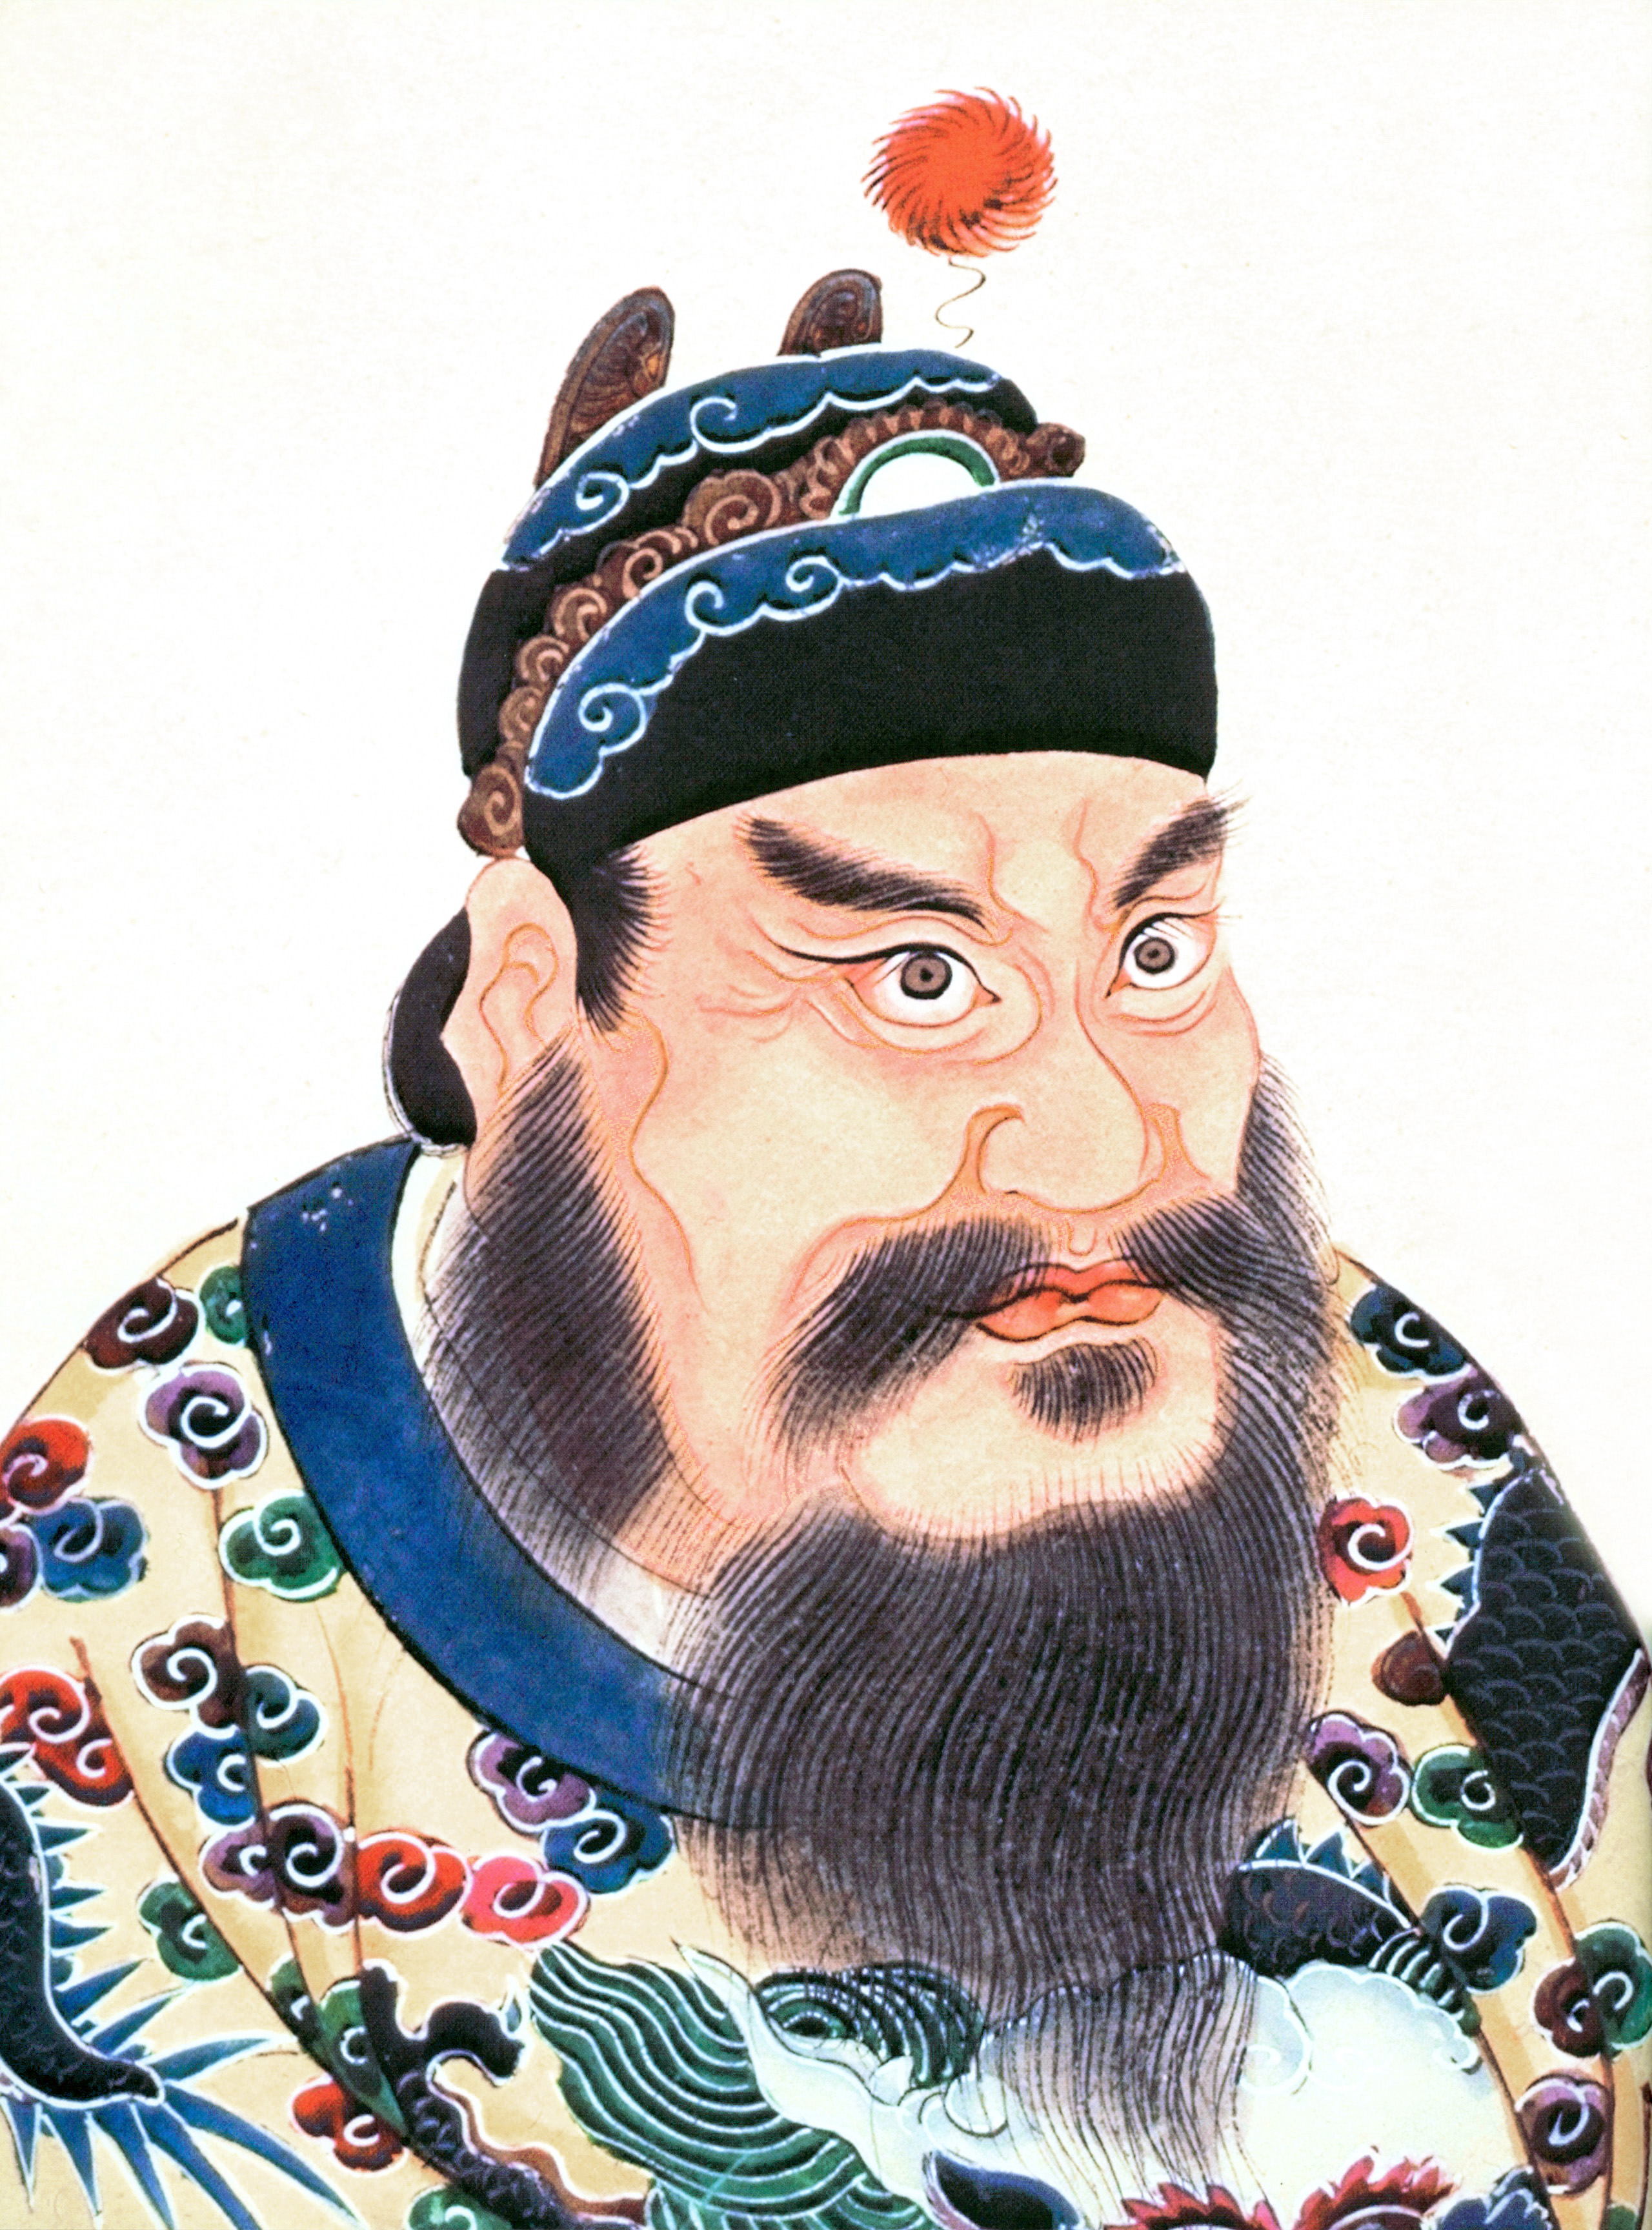 a biography of shih huang a ruler of the chinese kingdom Emperor qin shi huang biography qin shi huang (ying zheng) (260-210 bc) – emperor of the first unified state of china from an early age, he was king of the state of qin during his lifetime, he conquered all the seven warring and diverging states – becoming the first person to unify china.